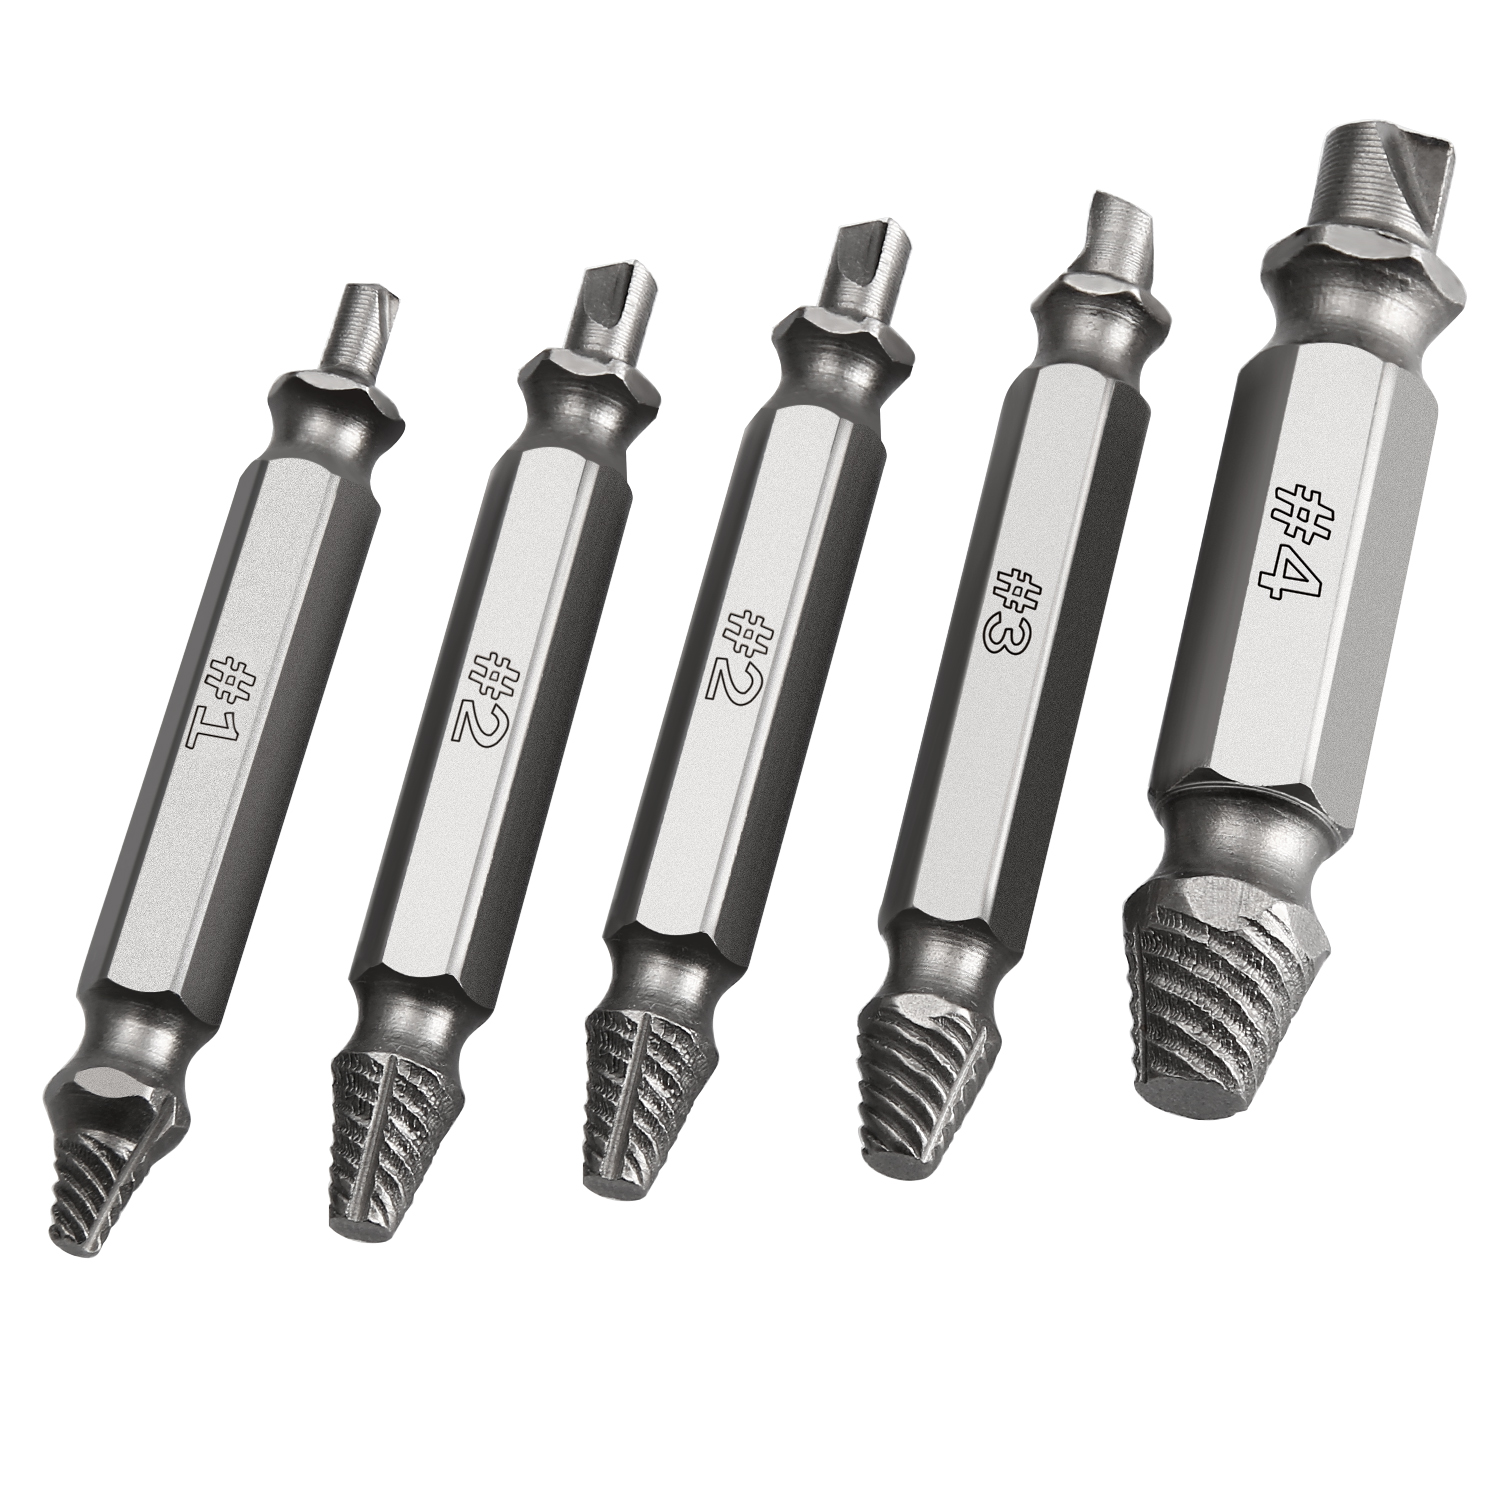 ORIA 5PCS/set Damaged Screw Extractor Drill Bits Guide Set Broken Speed Easy Out Bolt Stud Stripped Screw Remover Tool